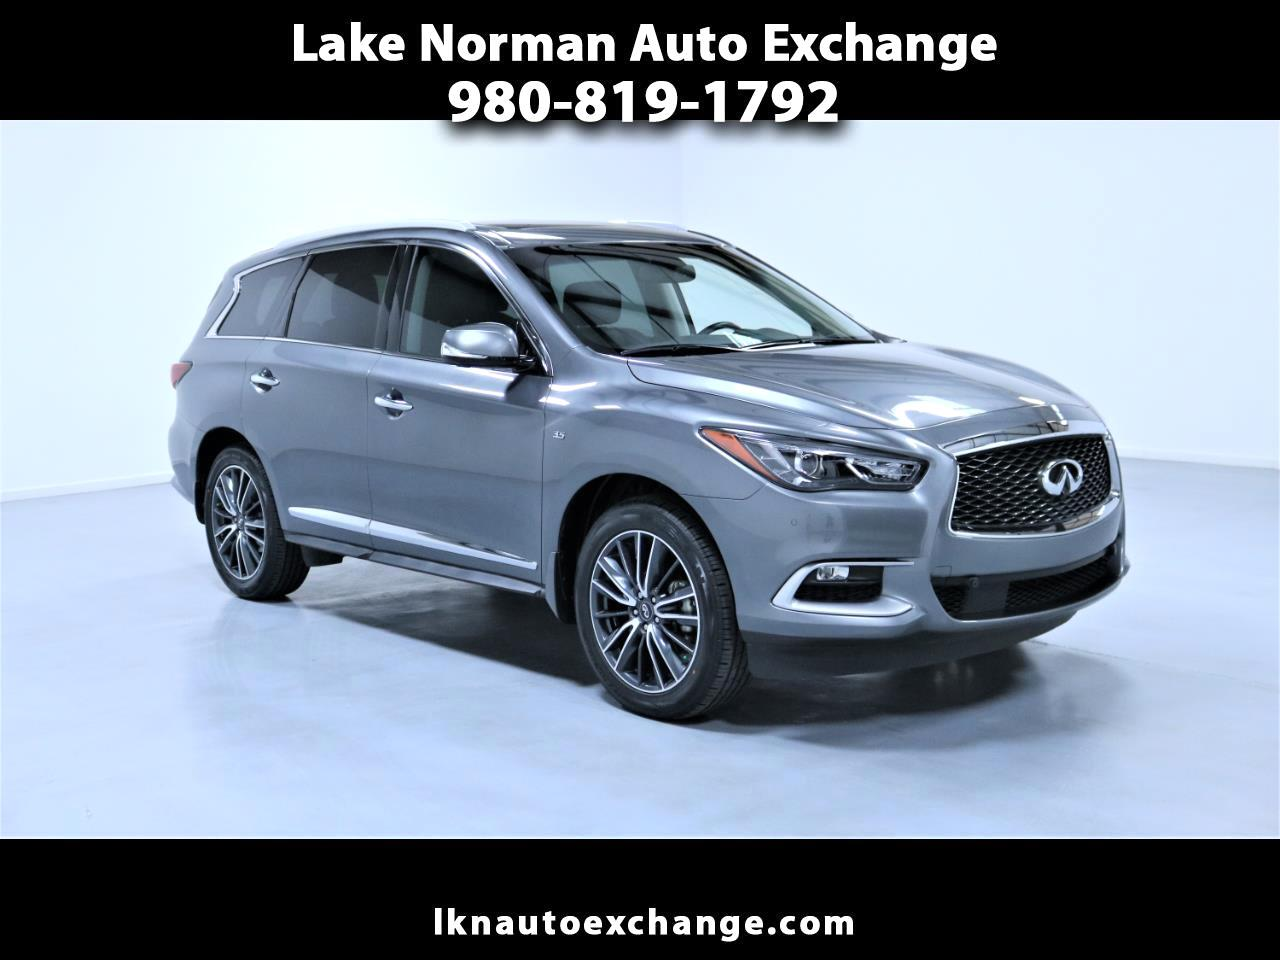 2016 Infiniti QX60 AWD Premium Plus Package